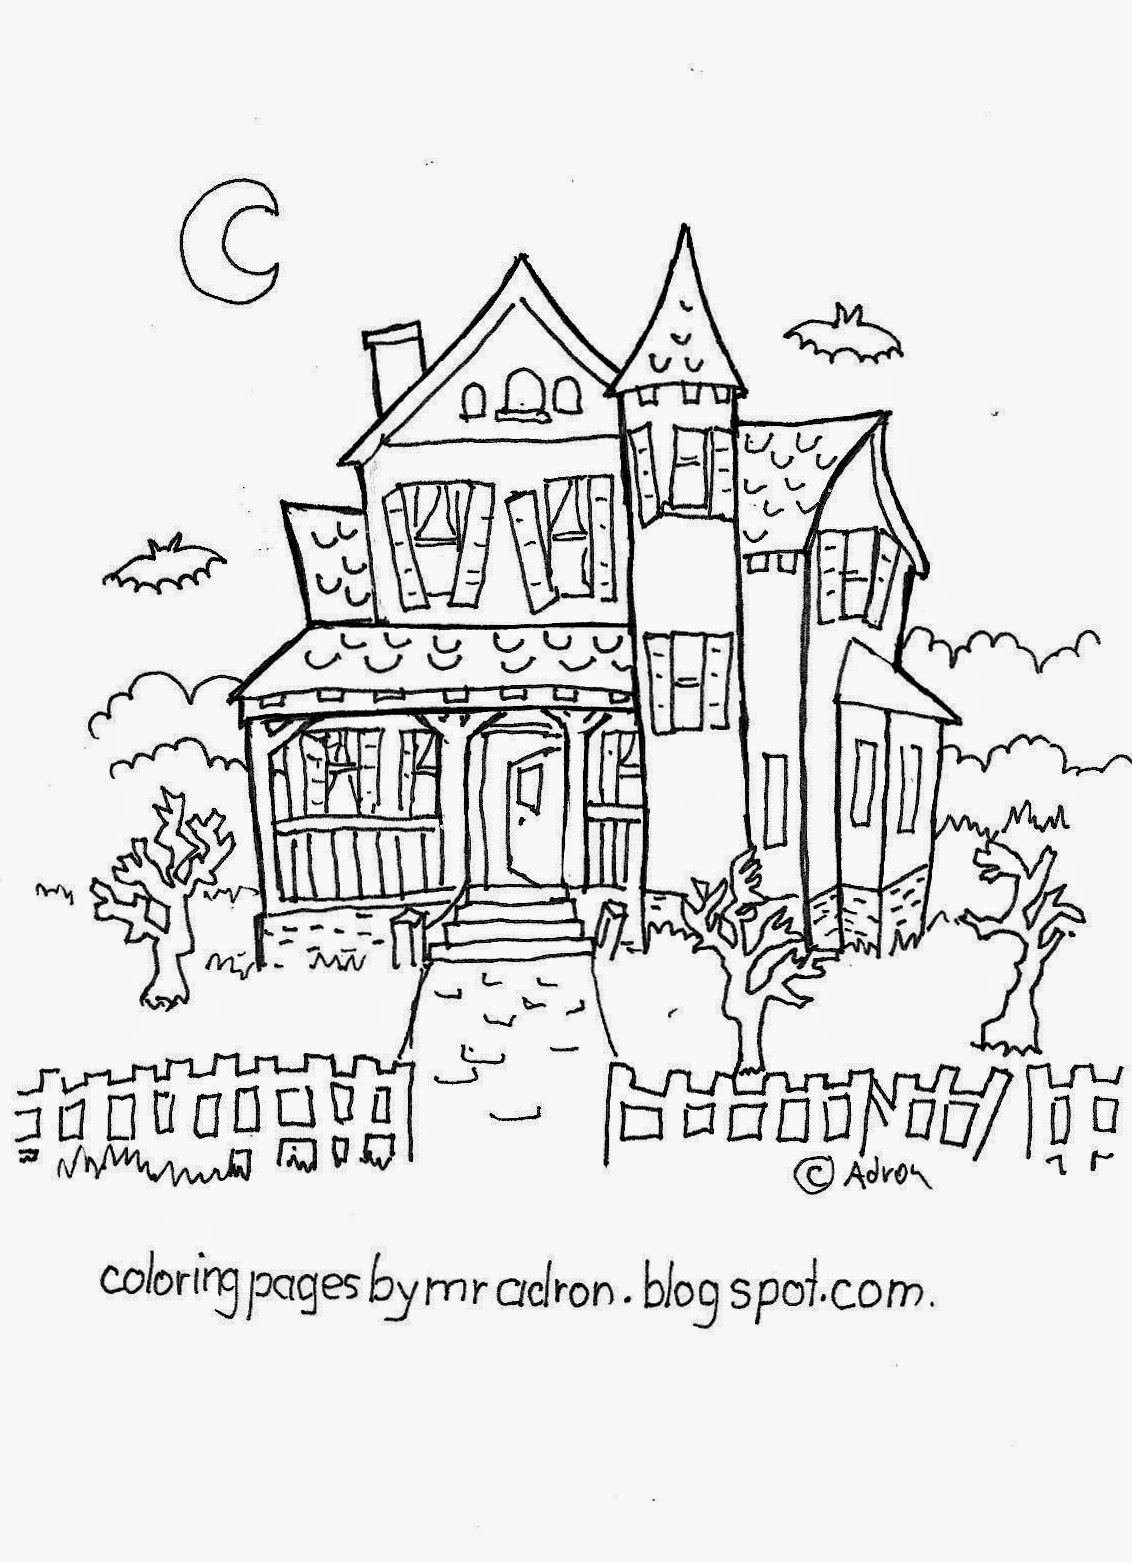 Coloring Pages for Kids by Mr. Adron: Haunted House Free